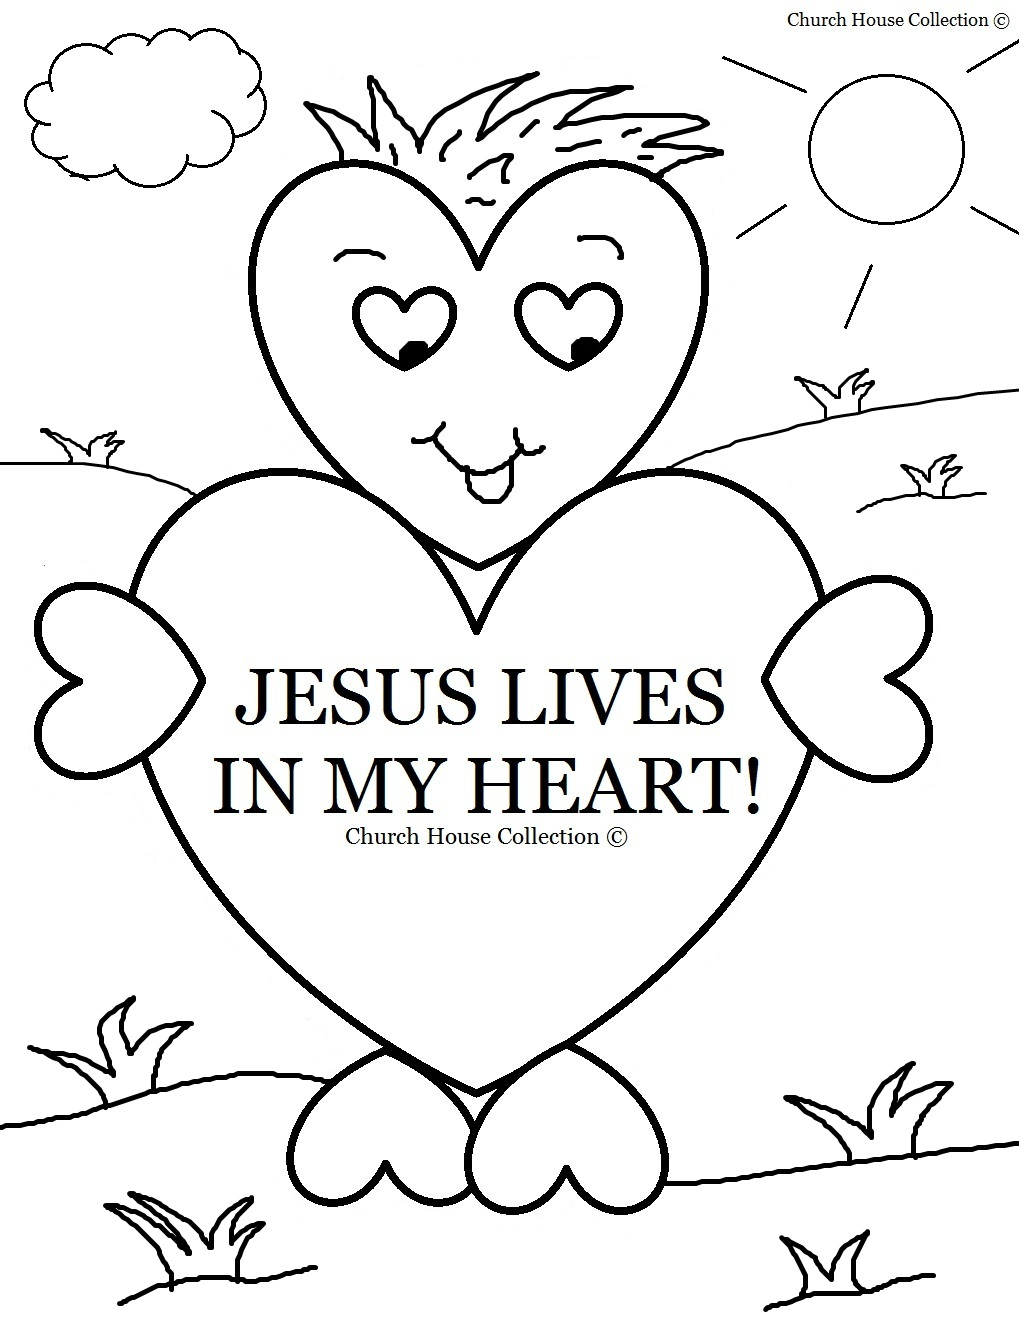 free valentine coloring pages for sunday school - church house collection blog jesus lives in my heart